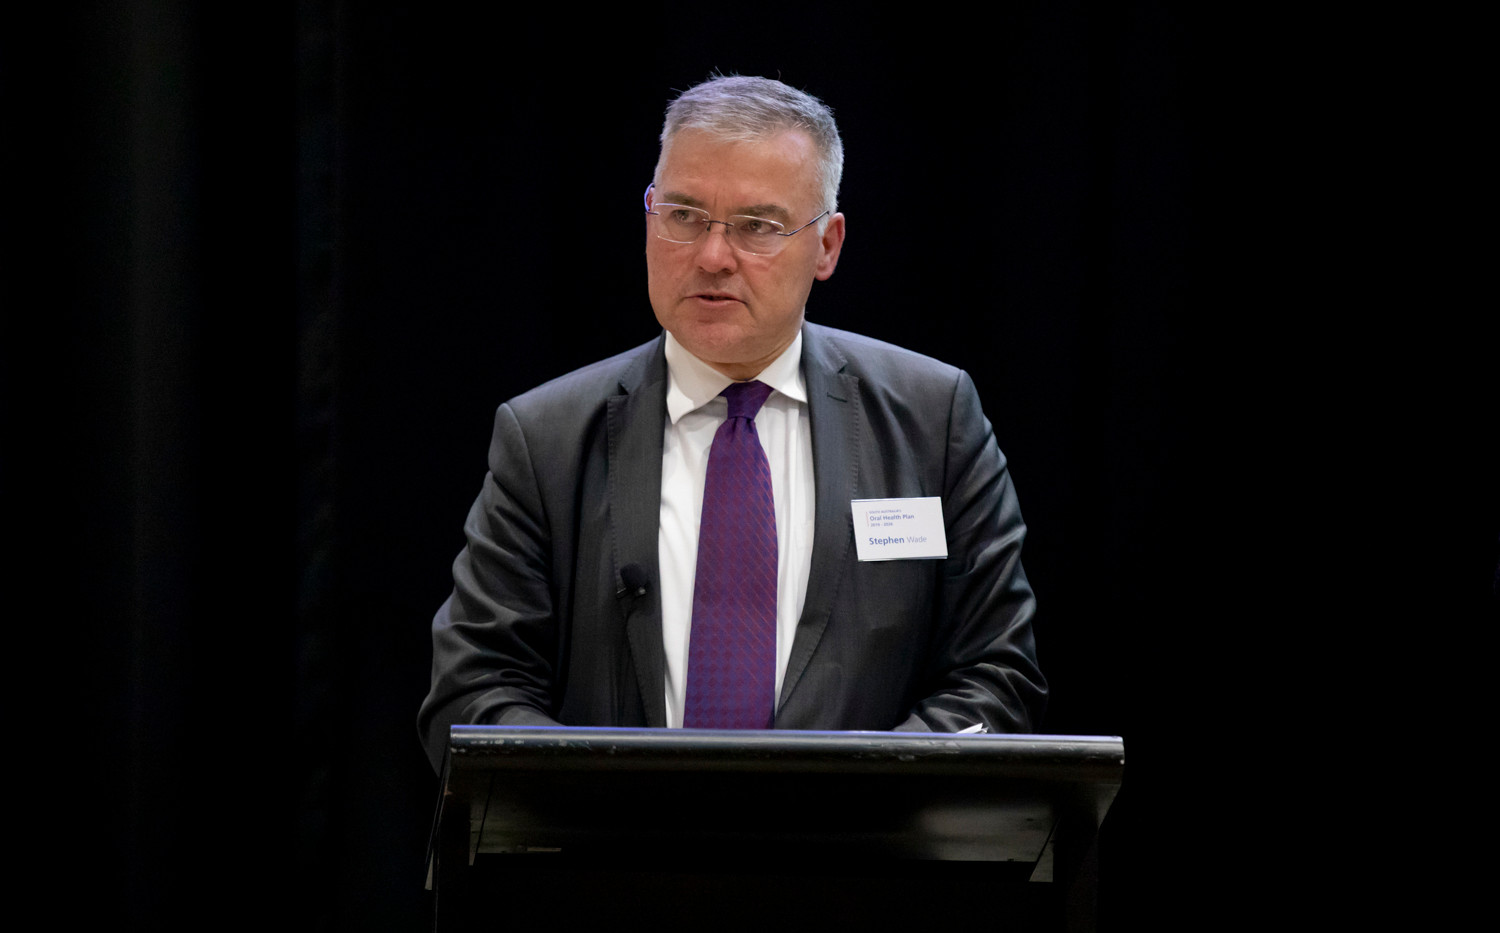 Honourable Stephen Wade MLC became South Australia's Minister for Health and Wellbeing